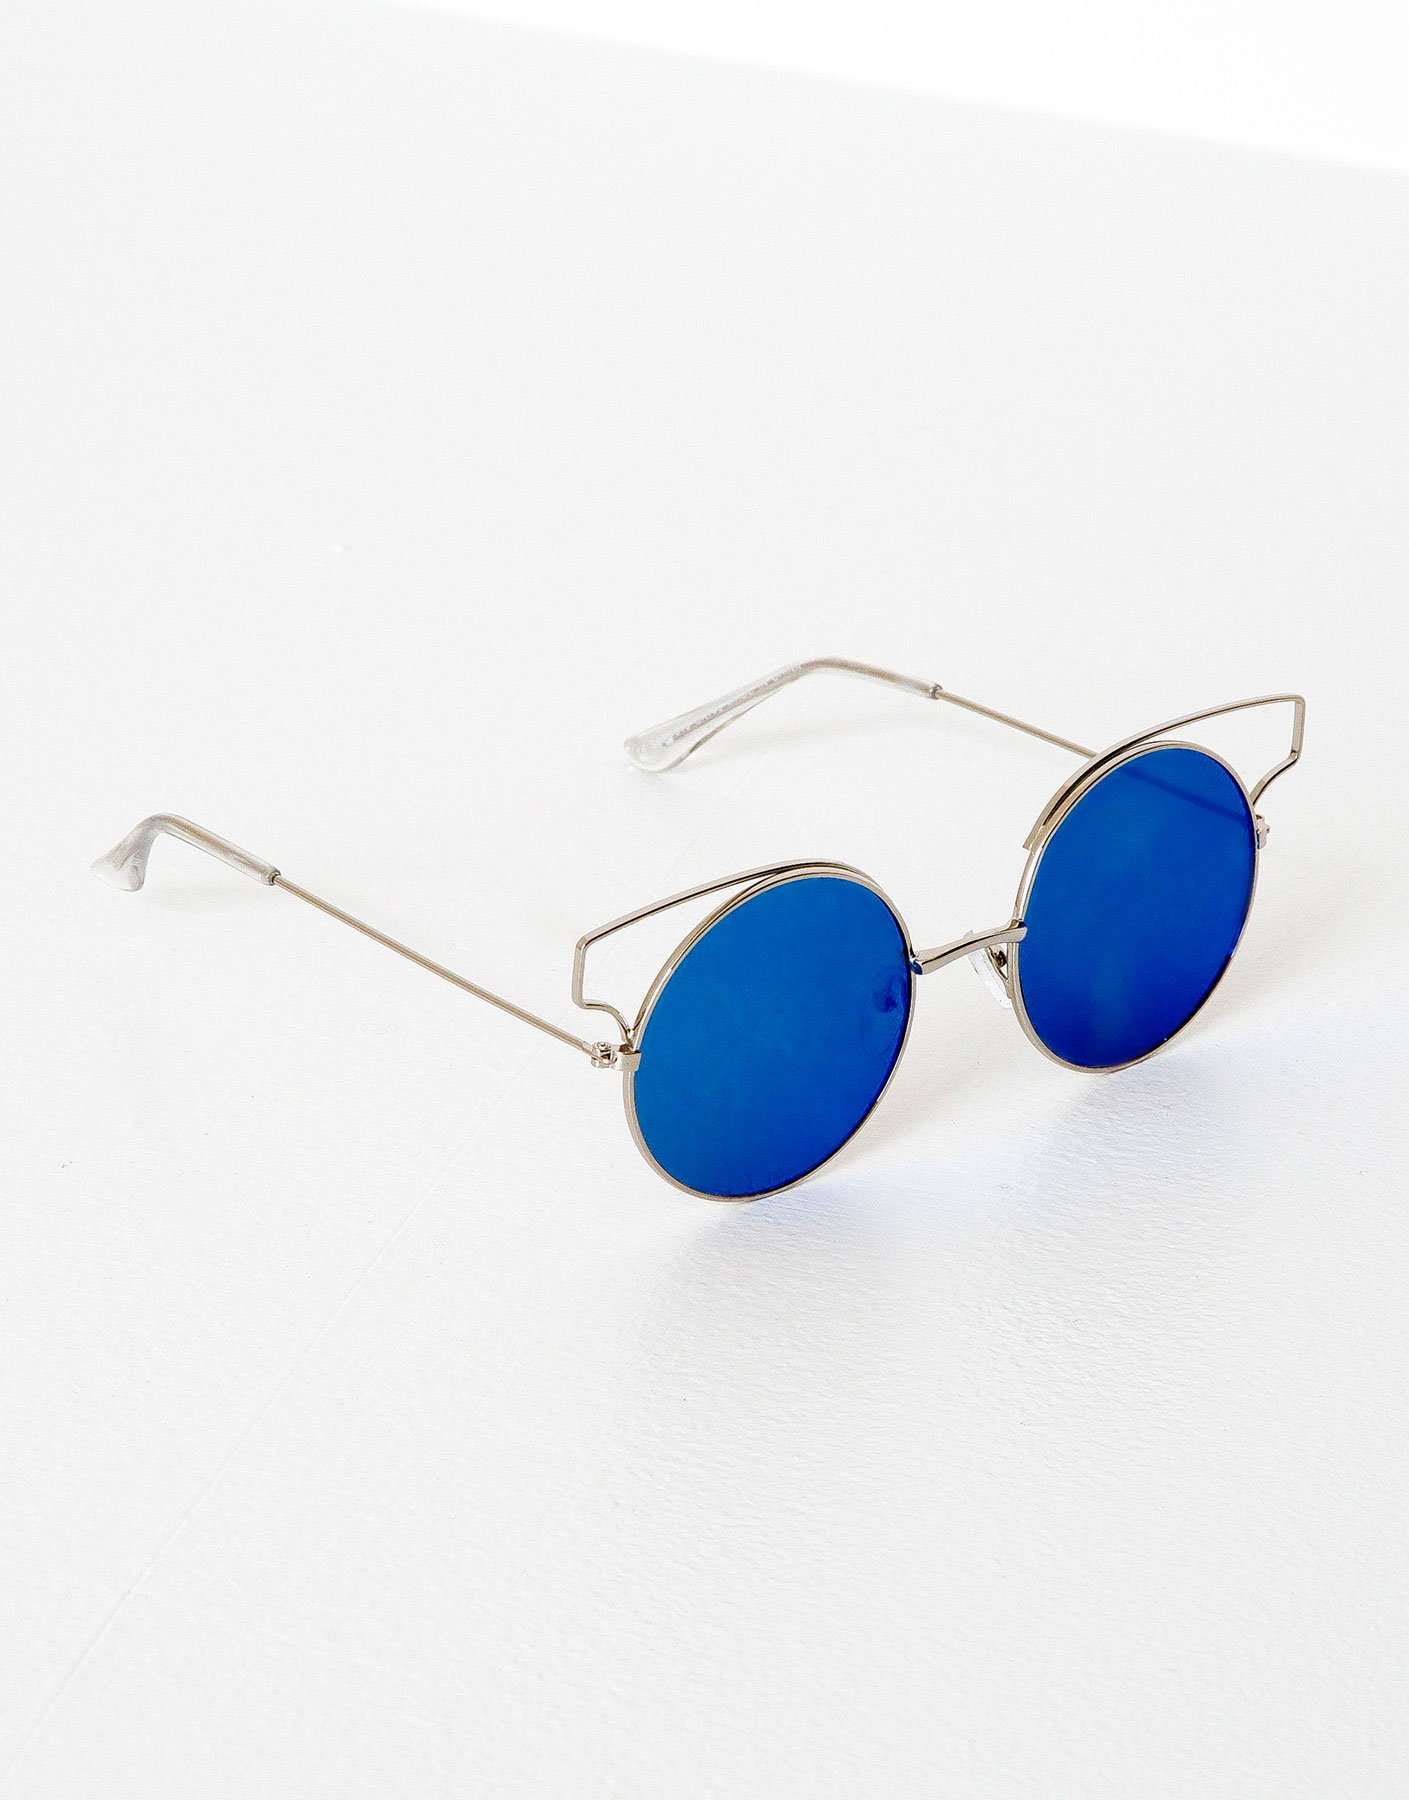 Round metallic mirrored sunglasses